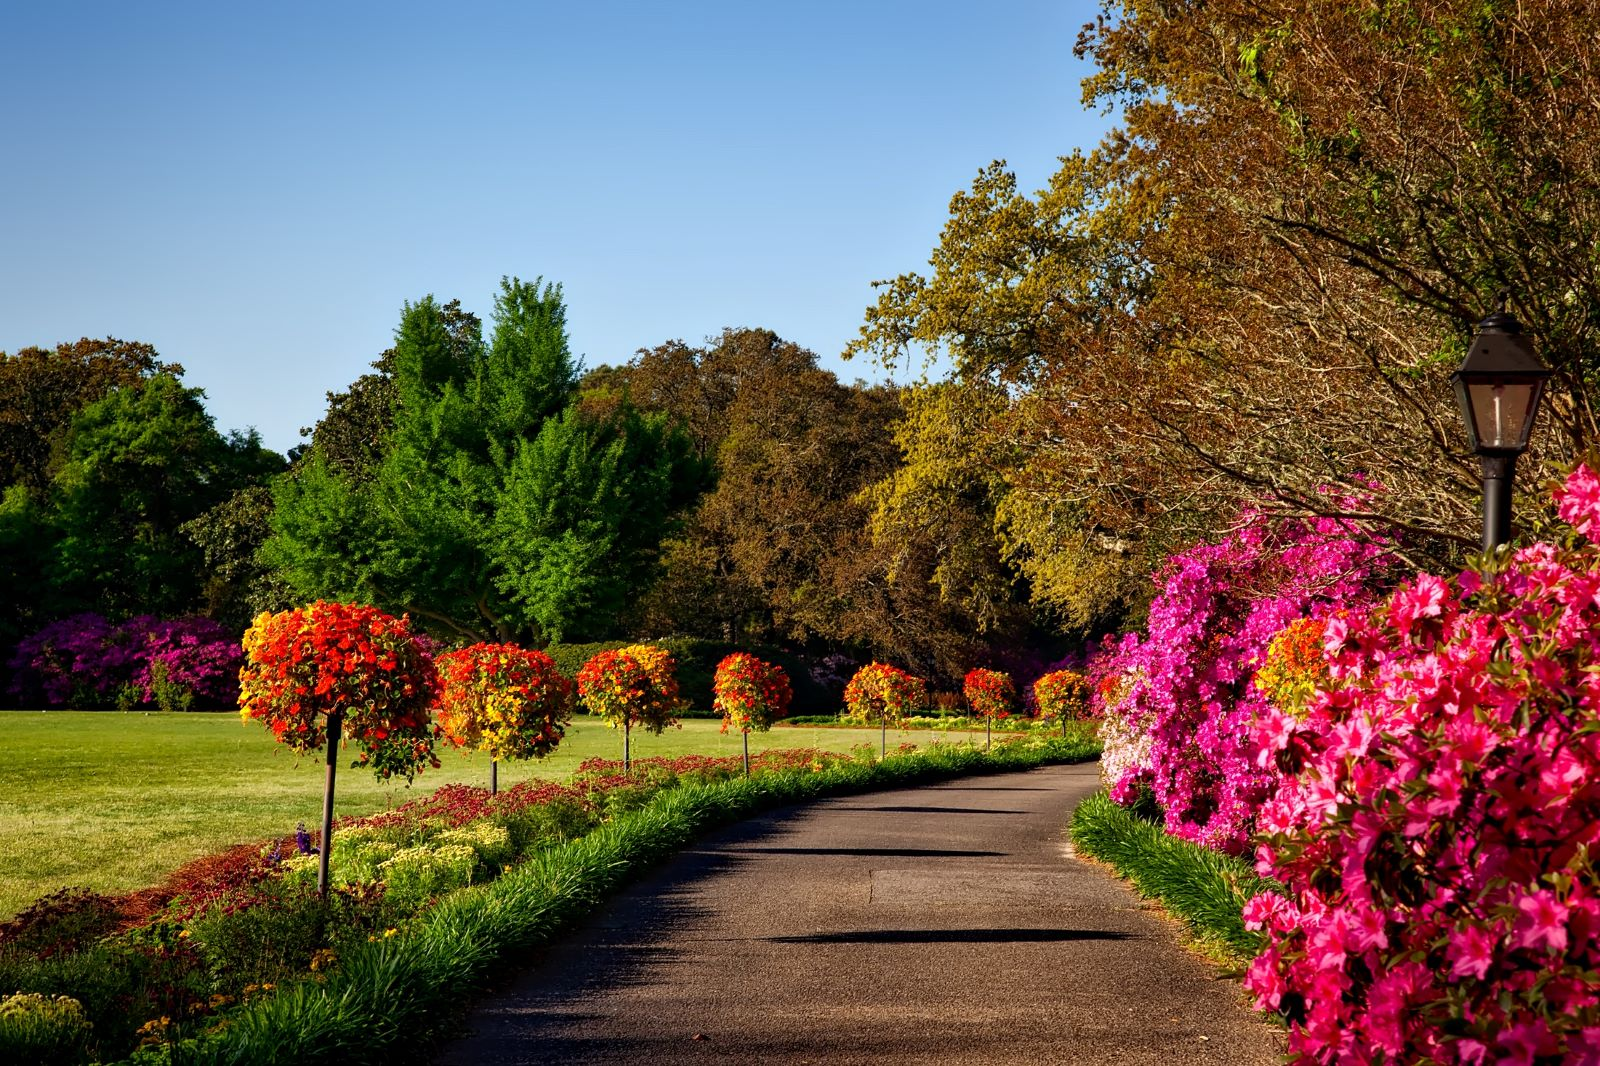 Best Places to Retire in Alabama - Walking path framed by flowering pink shrubs on the right and small manicured flowering red and yellow trees on the left with short flower and greenery, blue sky and the back drop has green trees and more pink flowering bushes